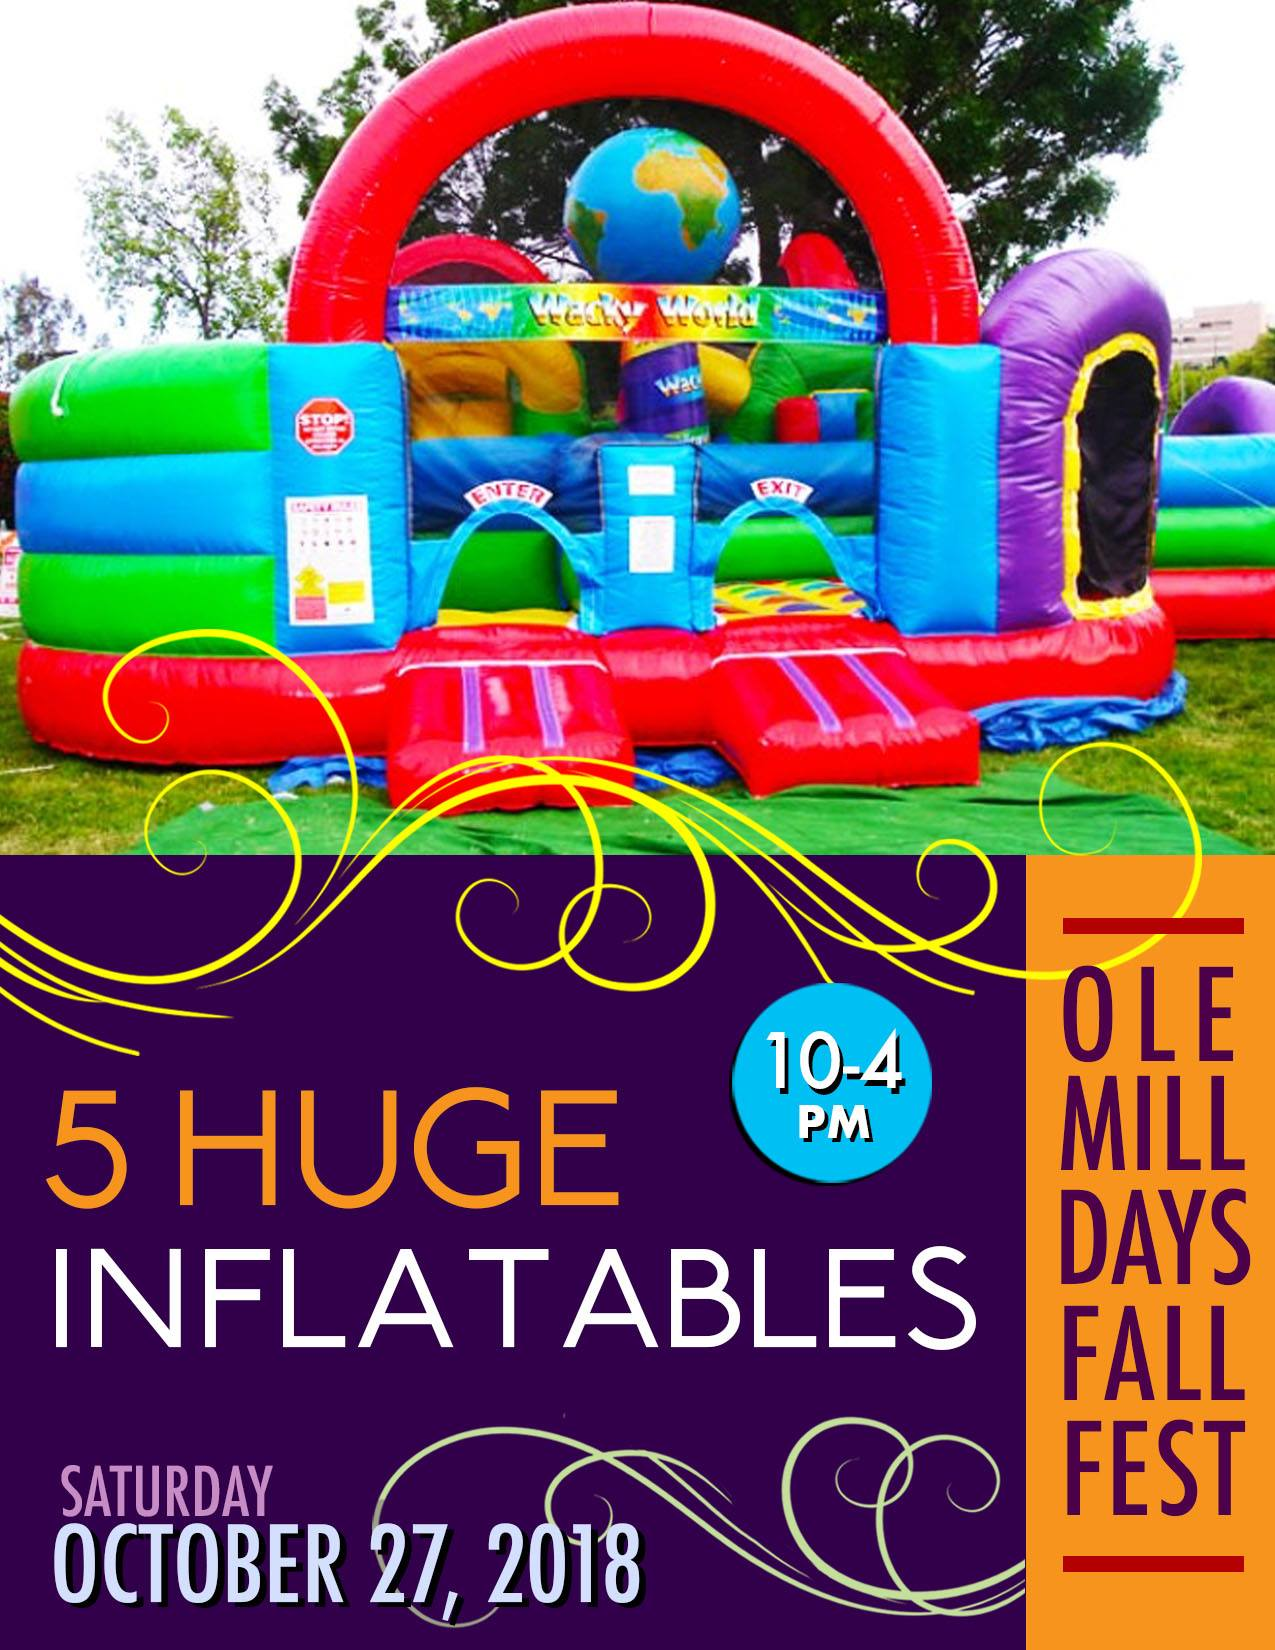 OLE MILL DAYS INFLATABLES